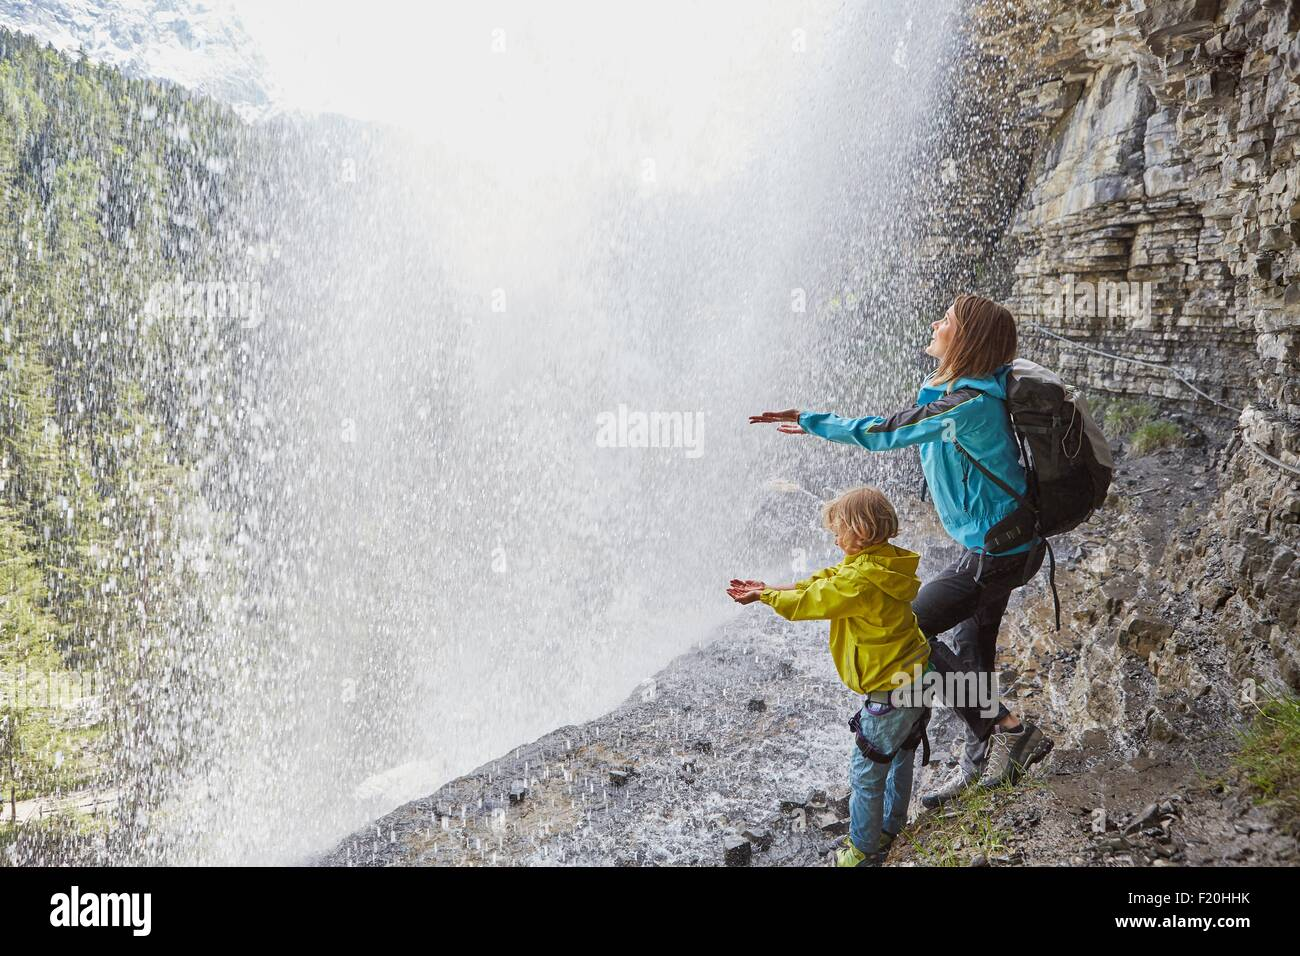 Mother and son, standing underneath waterfall, hands out to feel the water, rear view - Stock Image